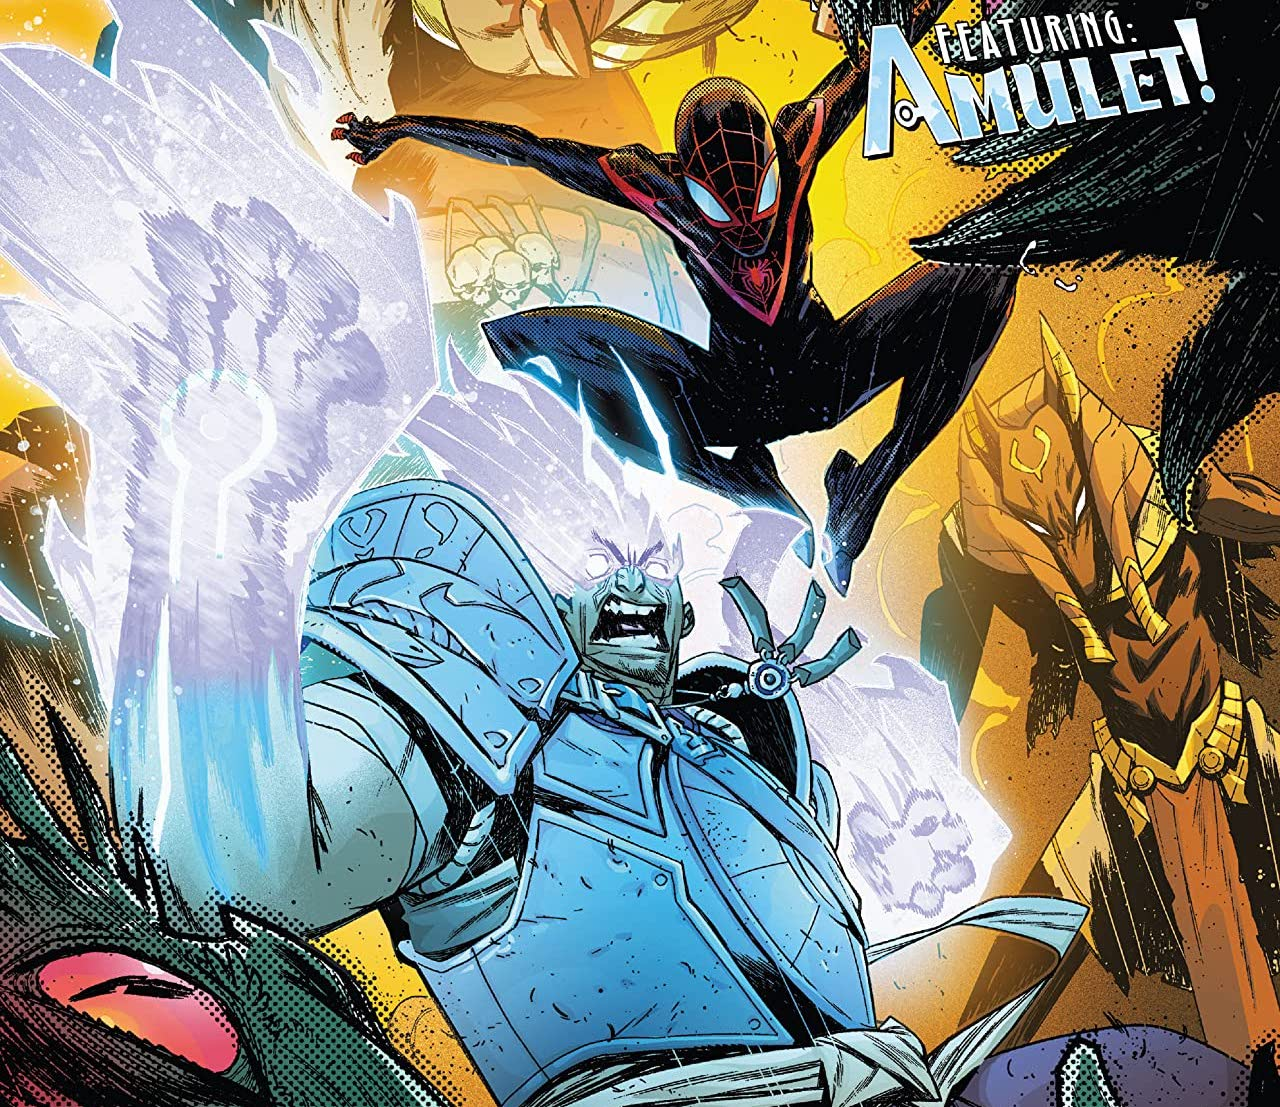 'Miles Morales: Spider-Man Annual' #1 further proves Amulet needs his own series